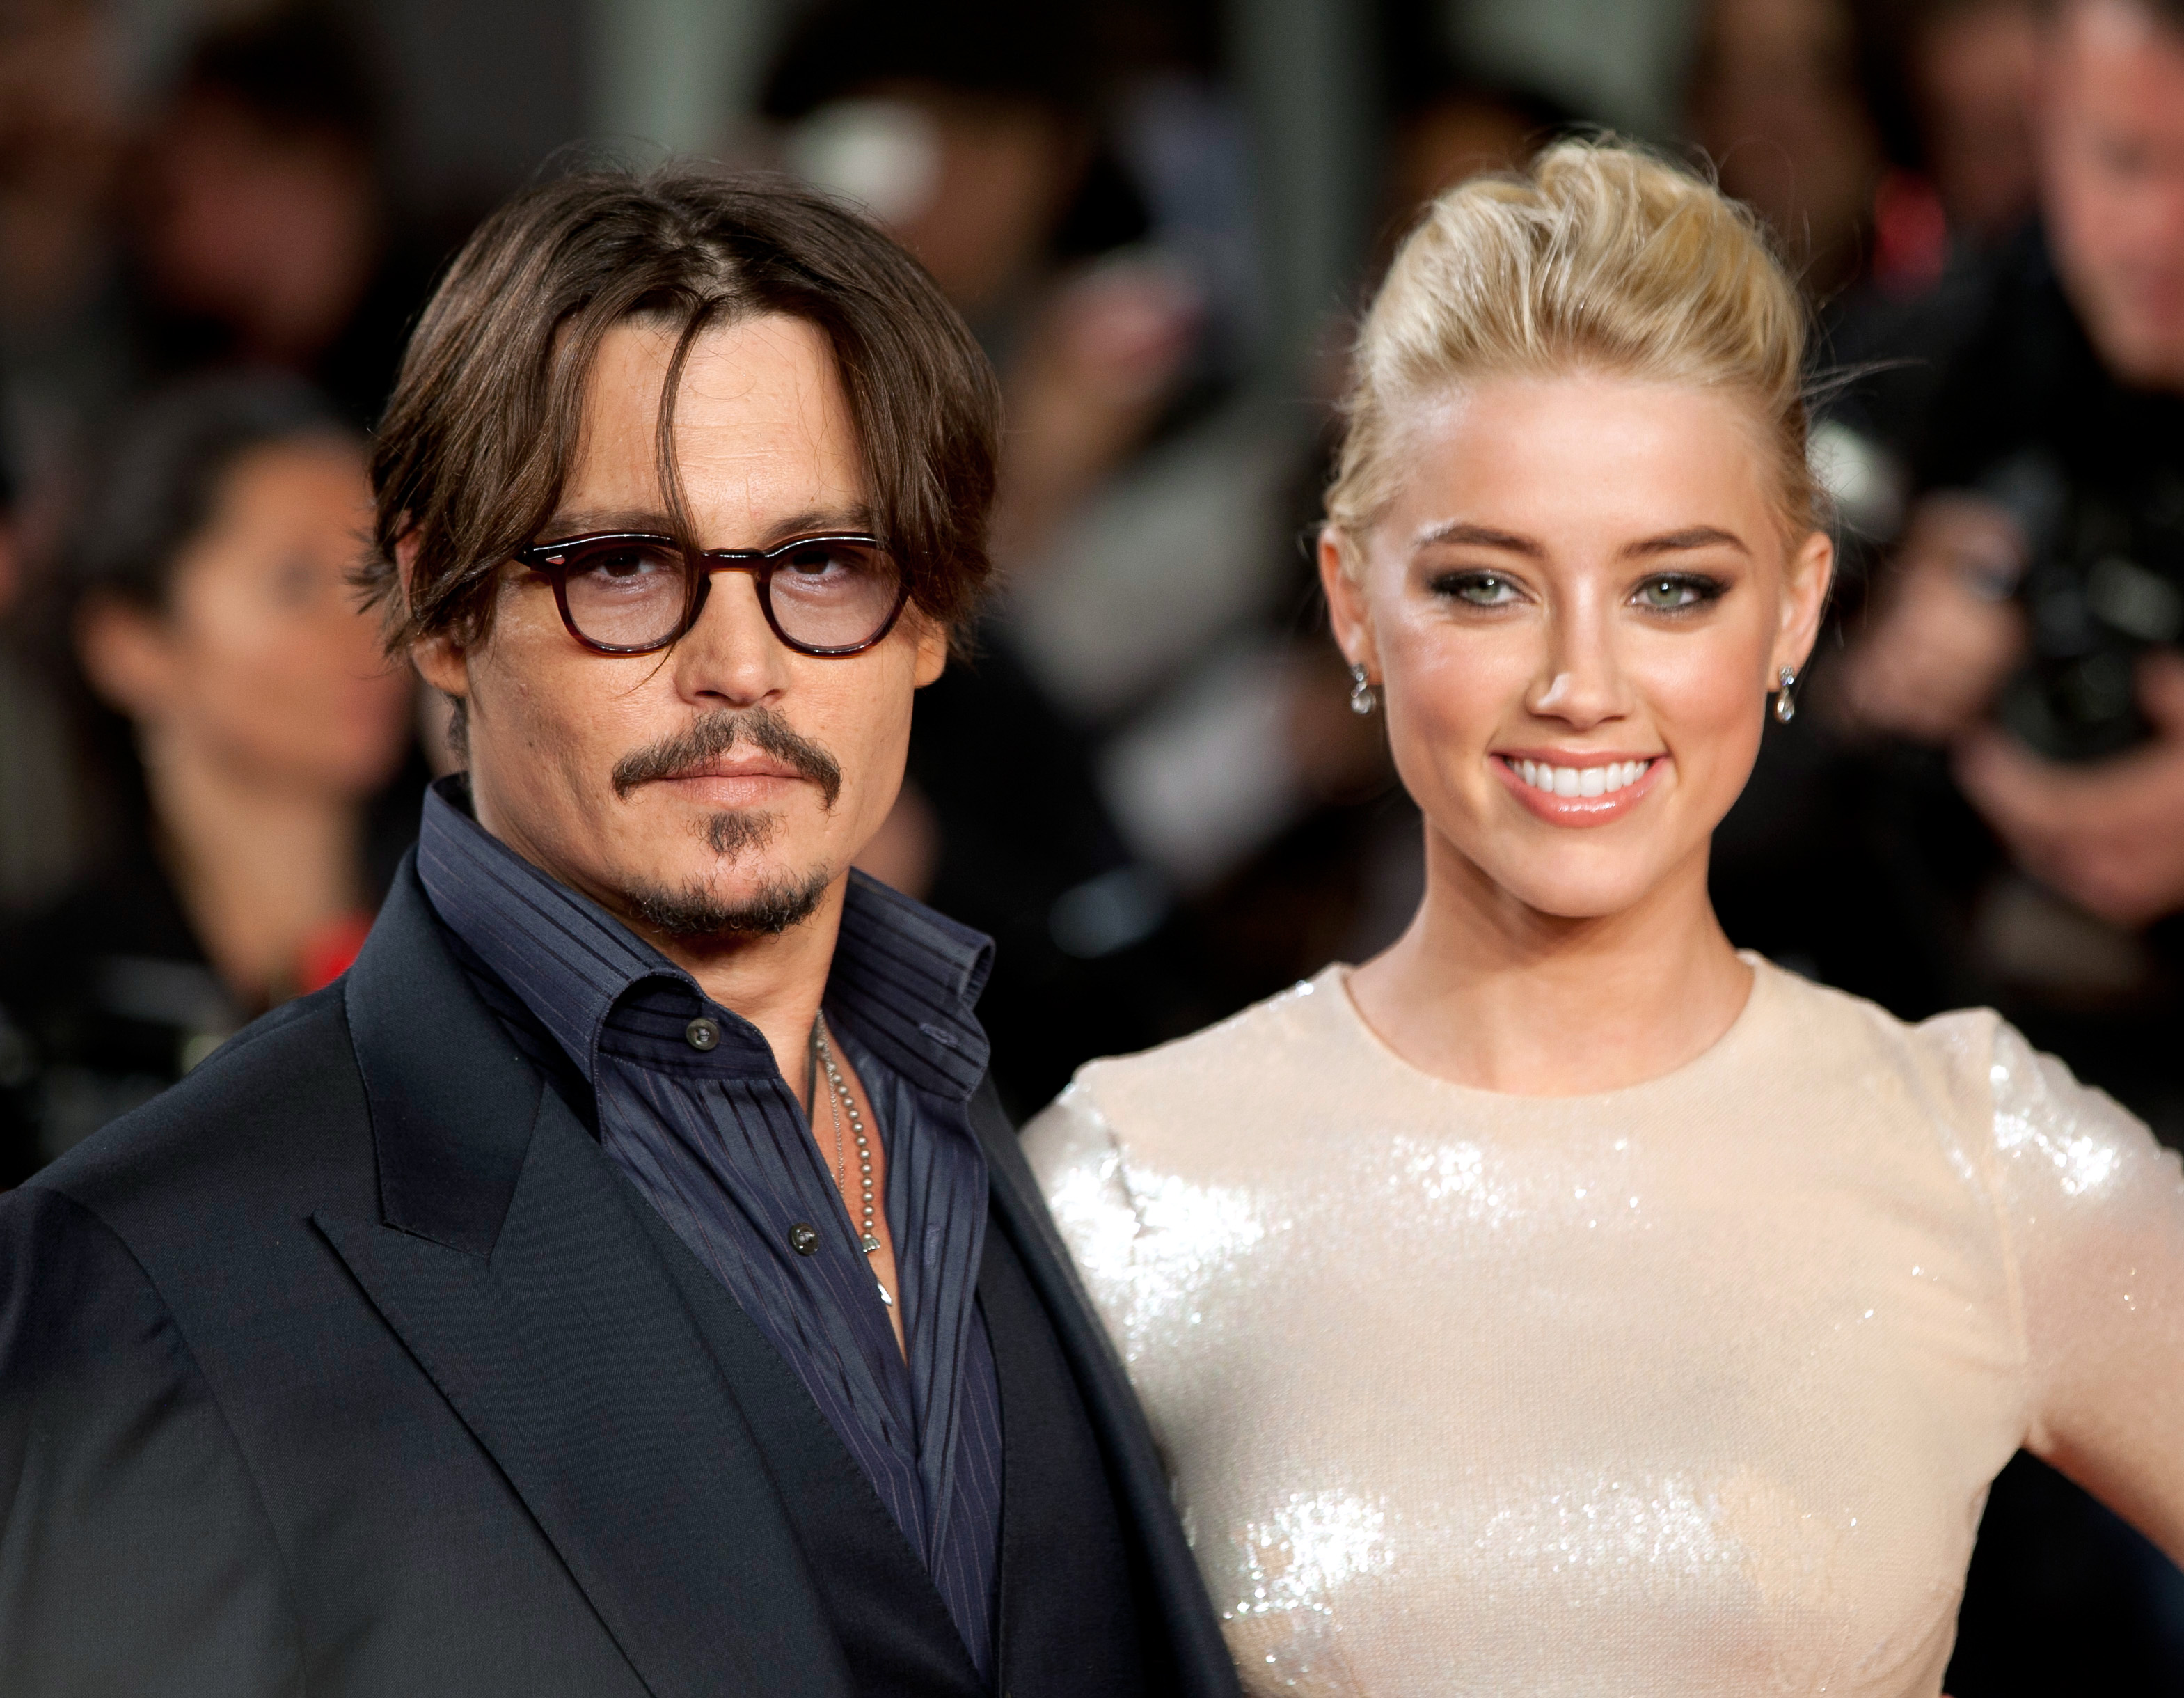 New texts allege Johnny Depp's PA knew about the 'domestic abuse' of Amber Heard